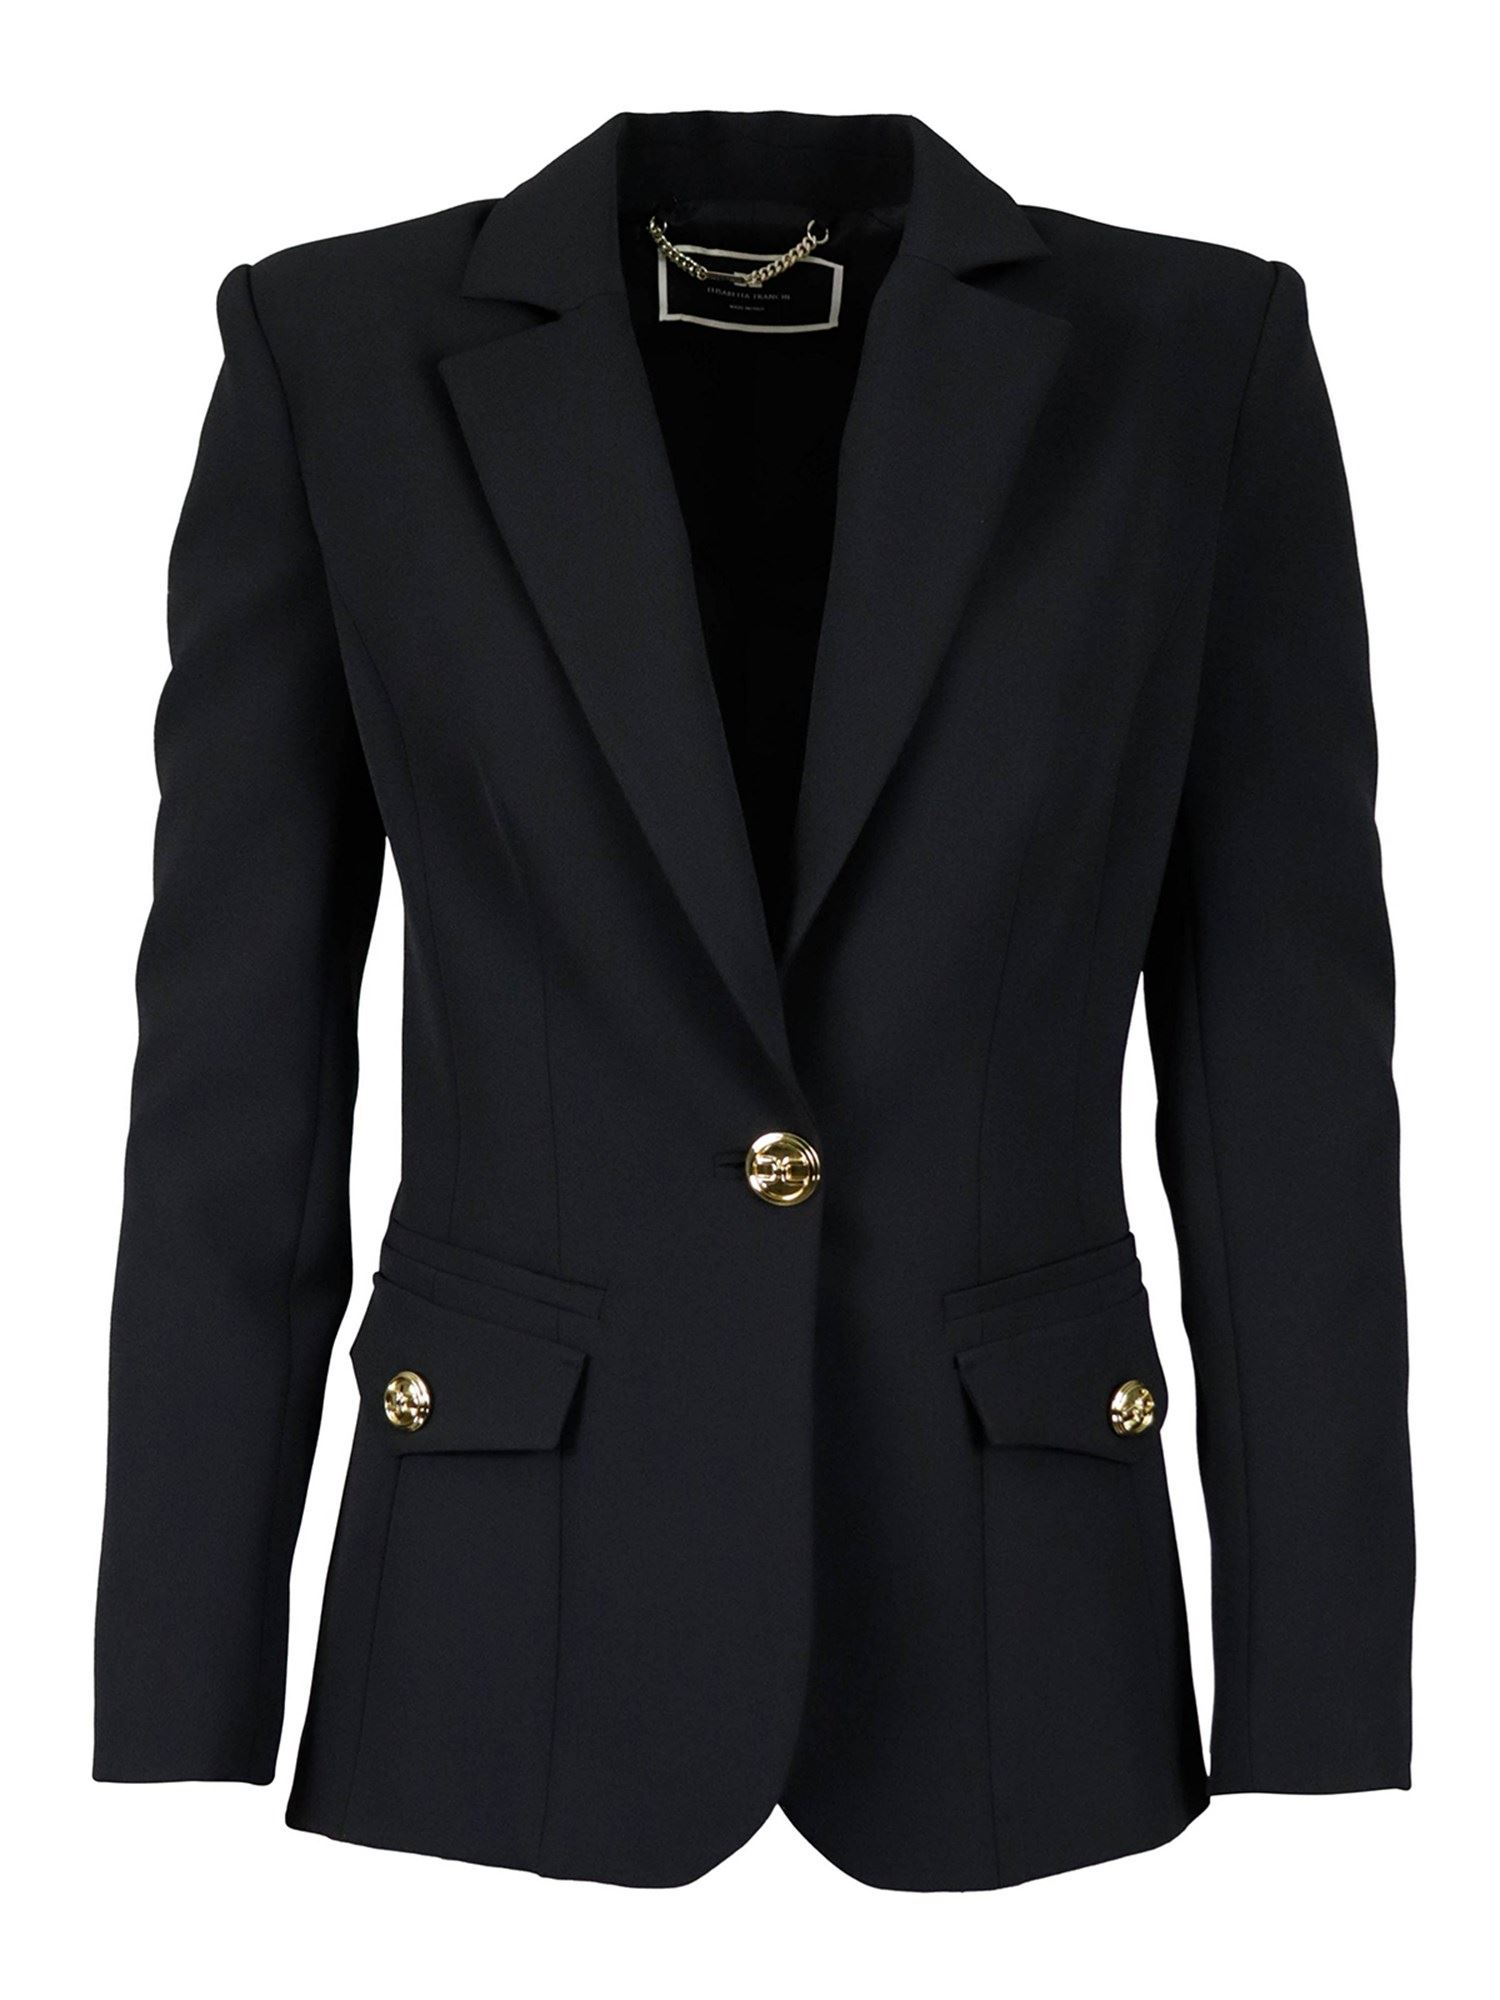 Elisabetta Franchi GOLD-TONE BUTTON BLAZER IN BLACK